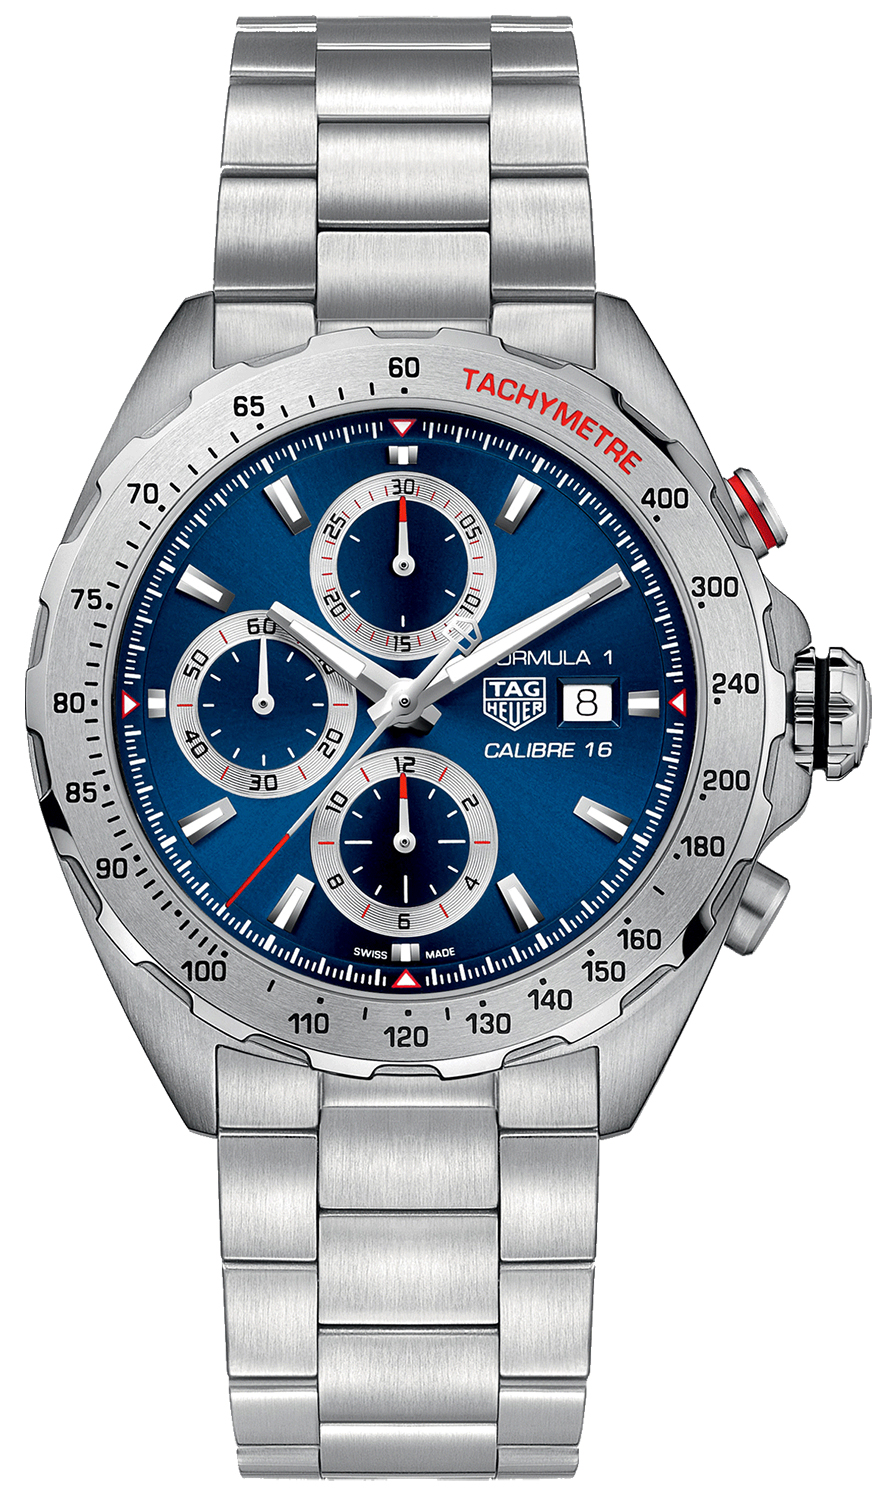 caz2015 ba0876 tag heuer formula 1 blue dial men 39 s watch. Black Bedroom Furniture Sets. Home Design Ideas